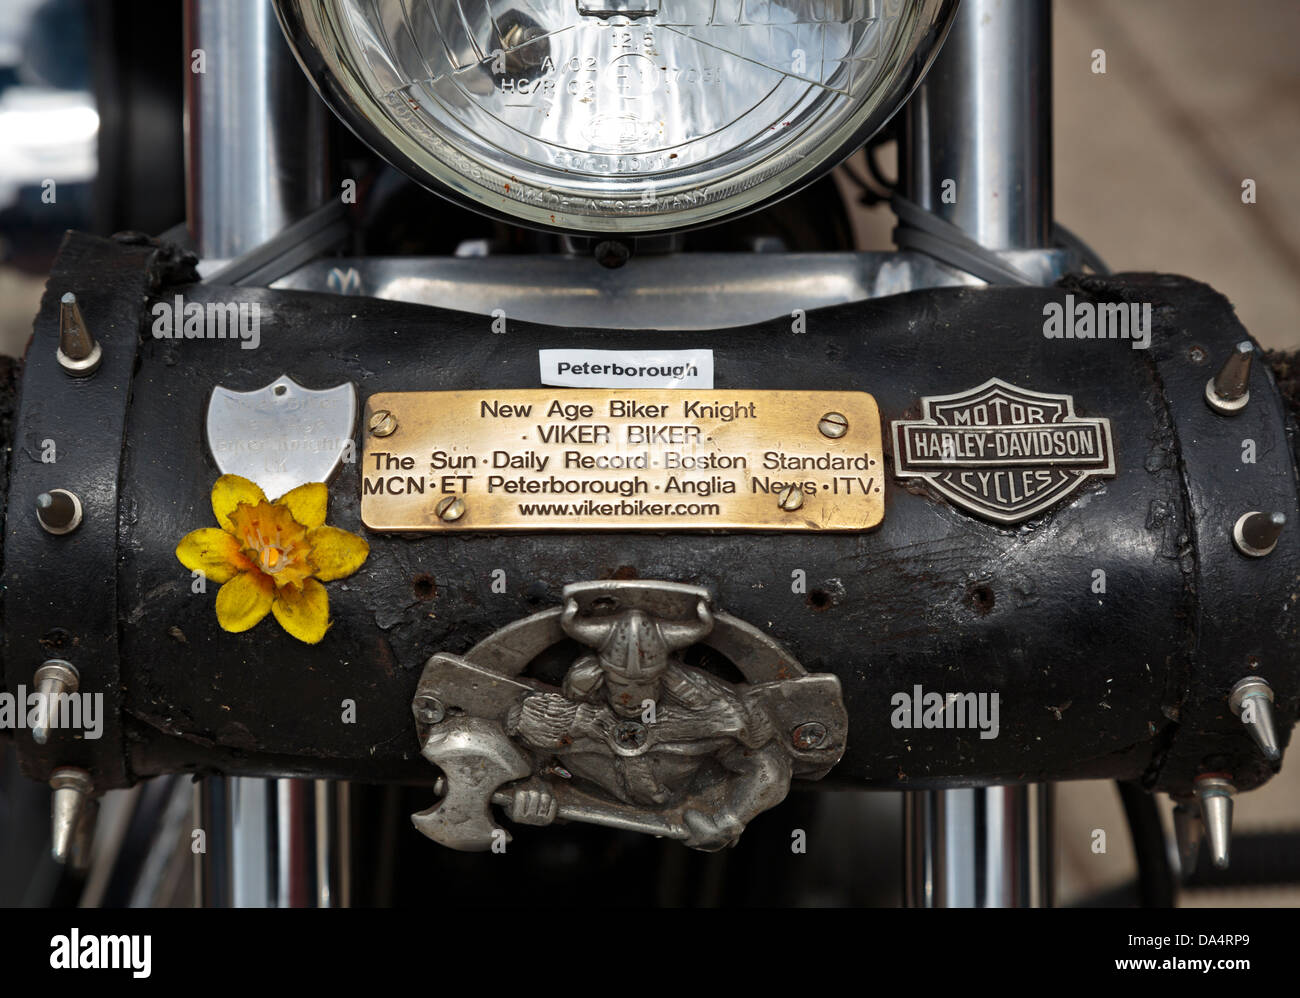 Harley-Davidson motorcycle owned by Viker Biker, Peterborough, England - Stock Image